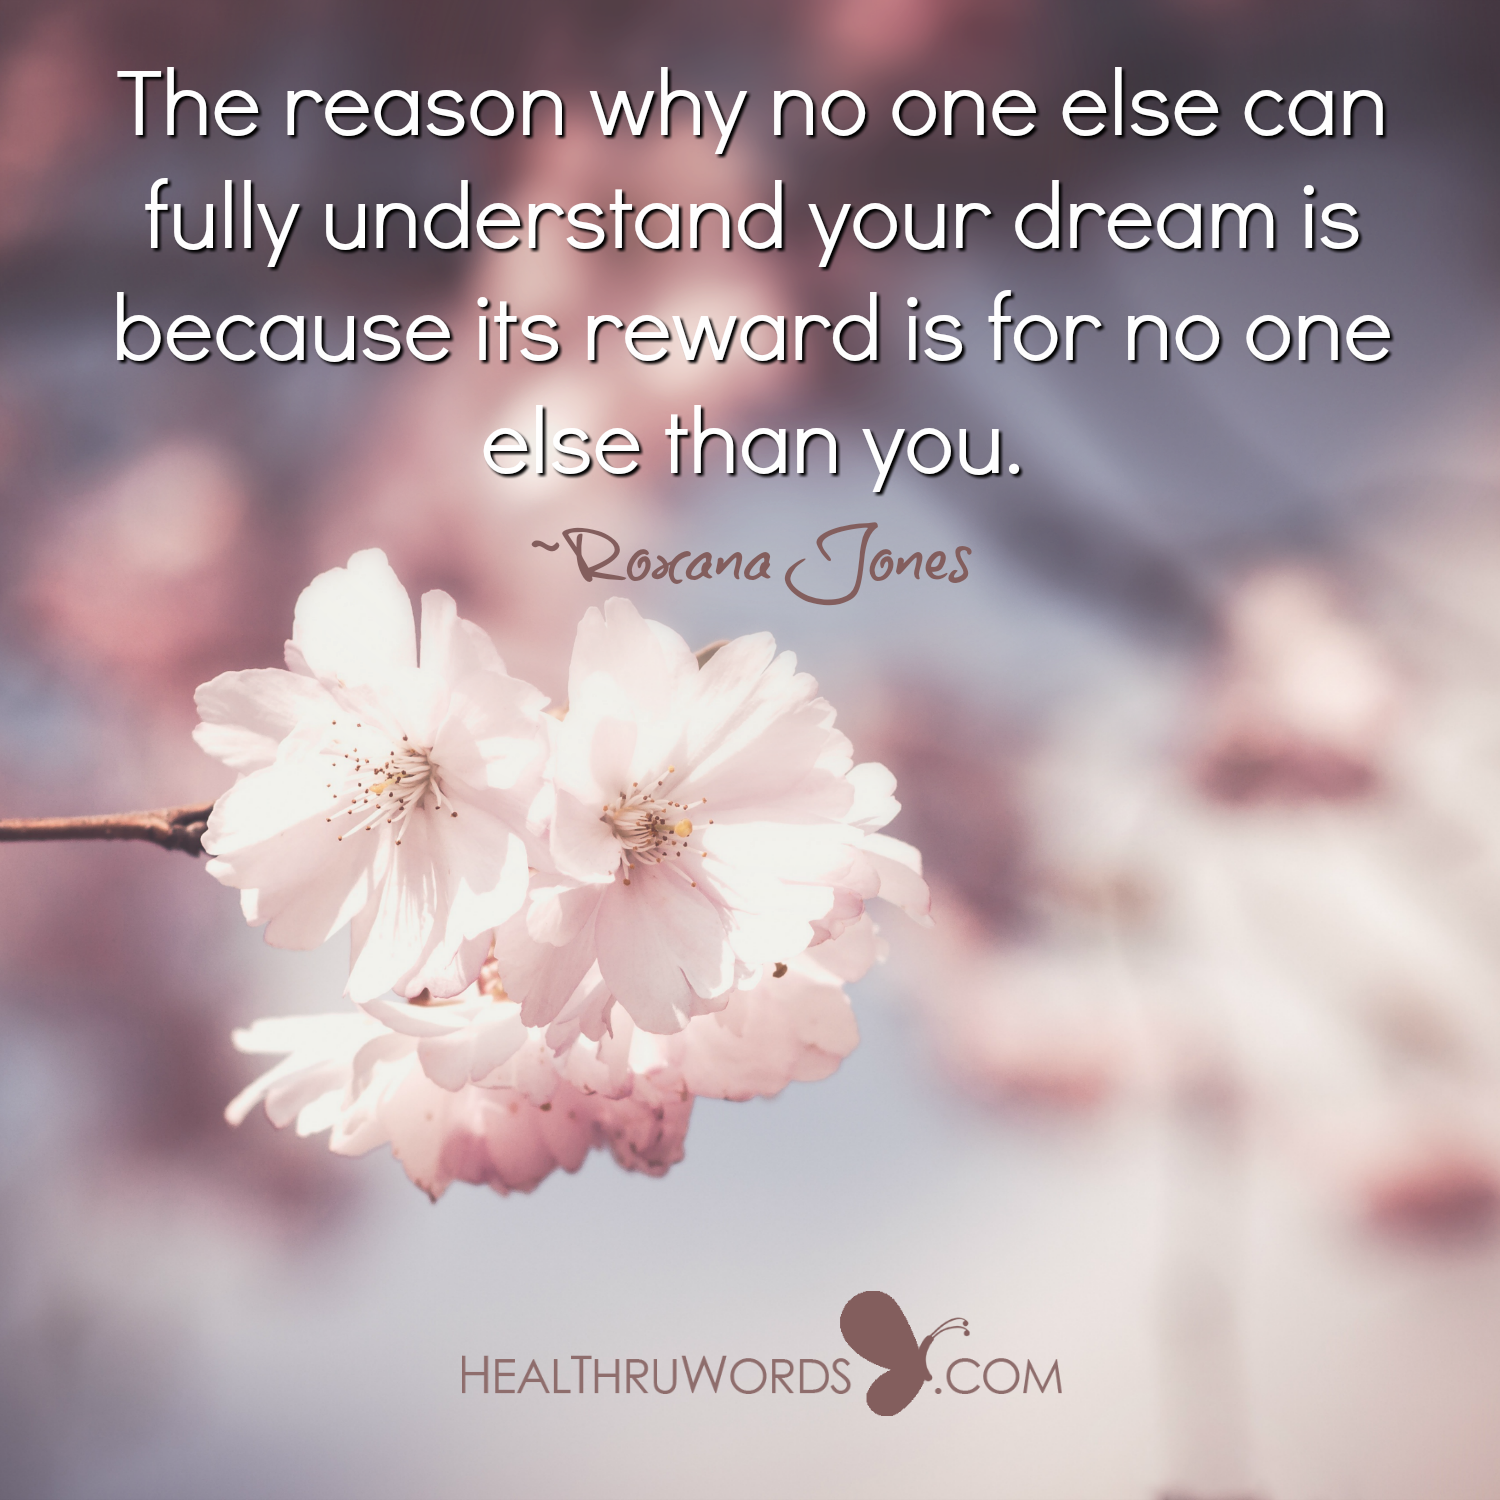 Inspirational Image: The Reward of a Dream